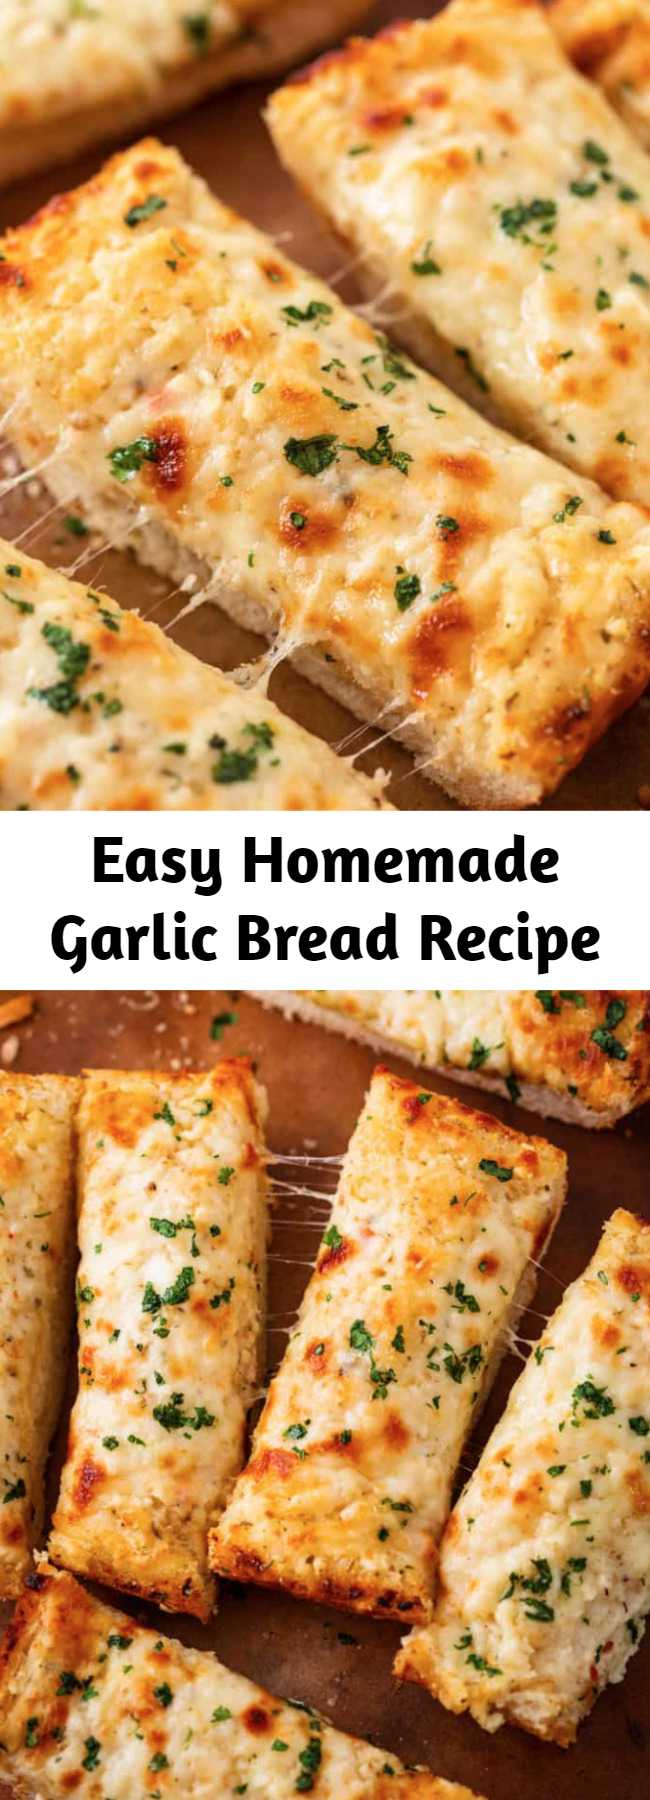 Easy Homemade Garlic Bread Recipe - This easy homemade garlic bread is loaded with two kinds of cheese and has secret ingredients that put it above the other garlic bread recipes out there! #recipe #sidedishidea #italianfood #sidedish #comfortfood #sides #breadsticks